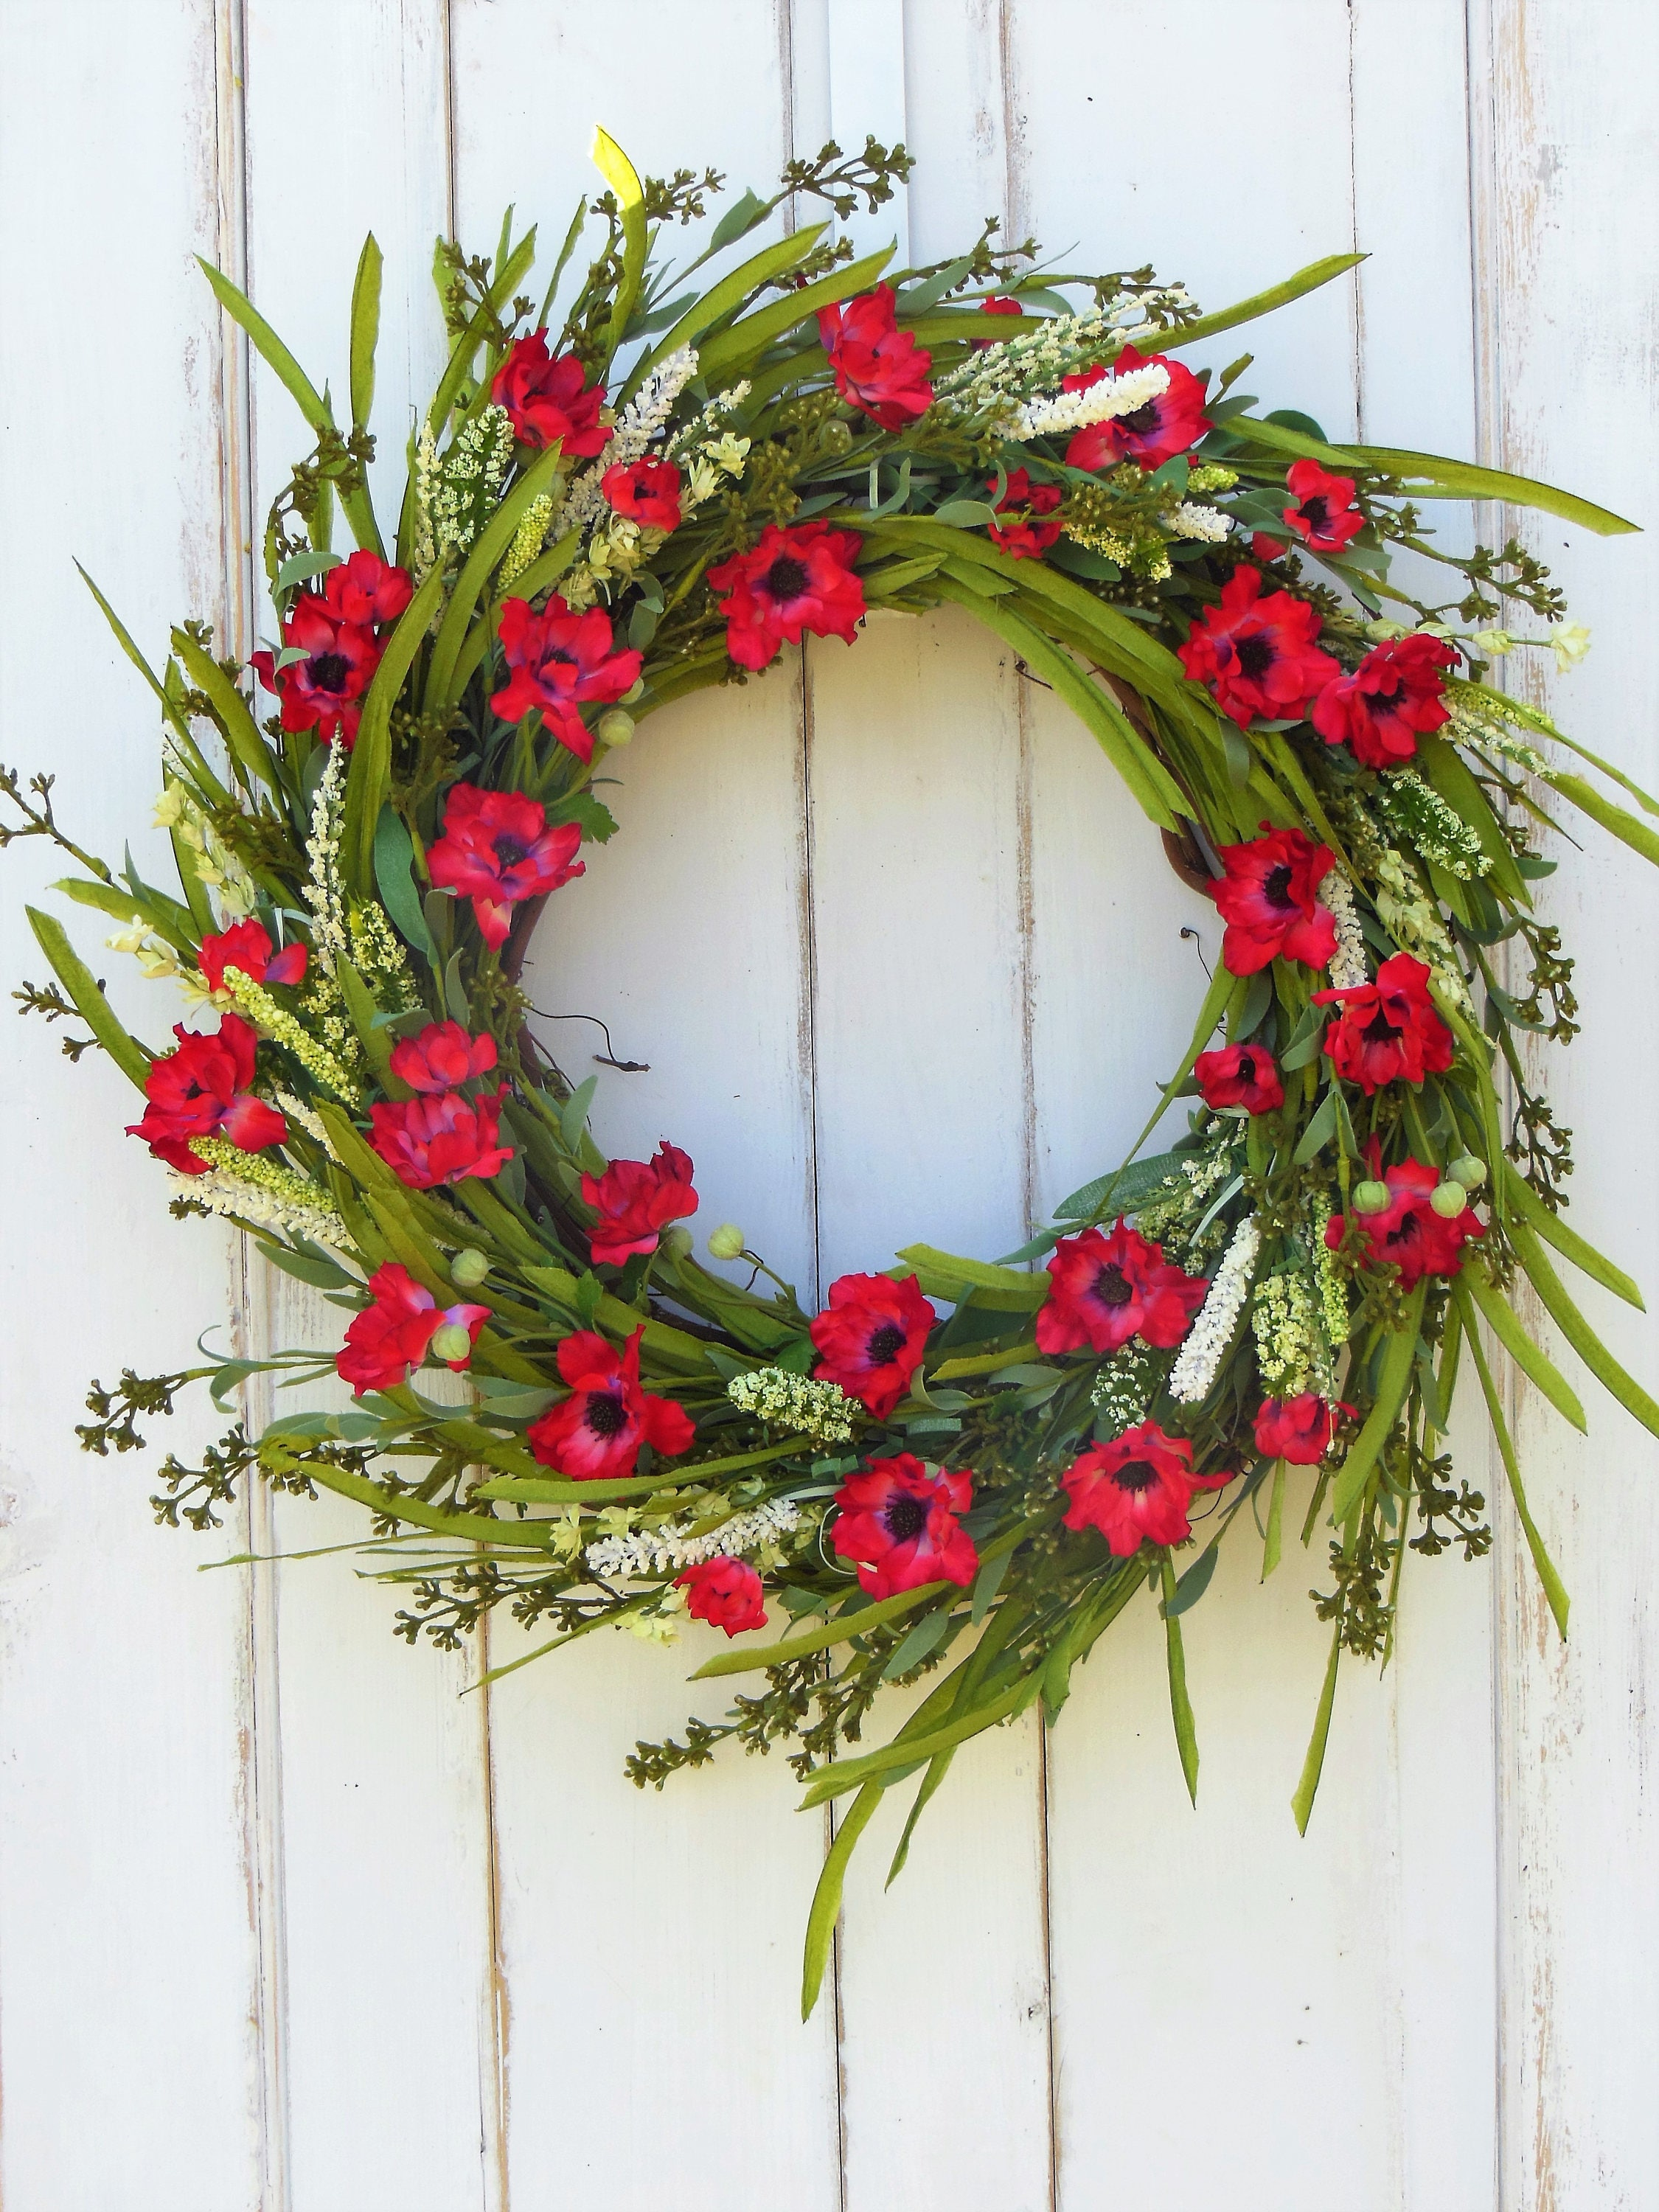 spring front door wreathsSummer Wreaths Summer Front Door Wreaths Door Wreaths for Summer